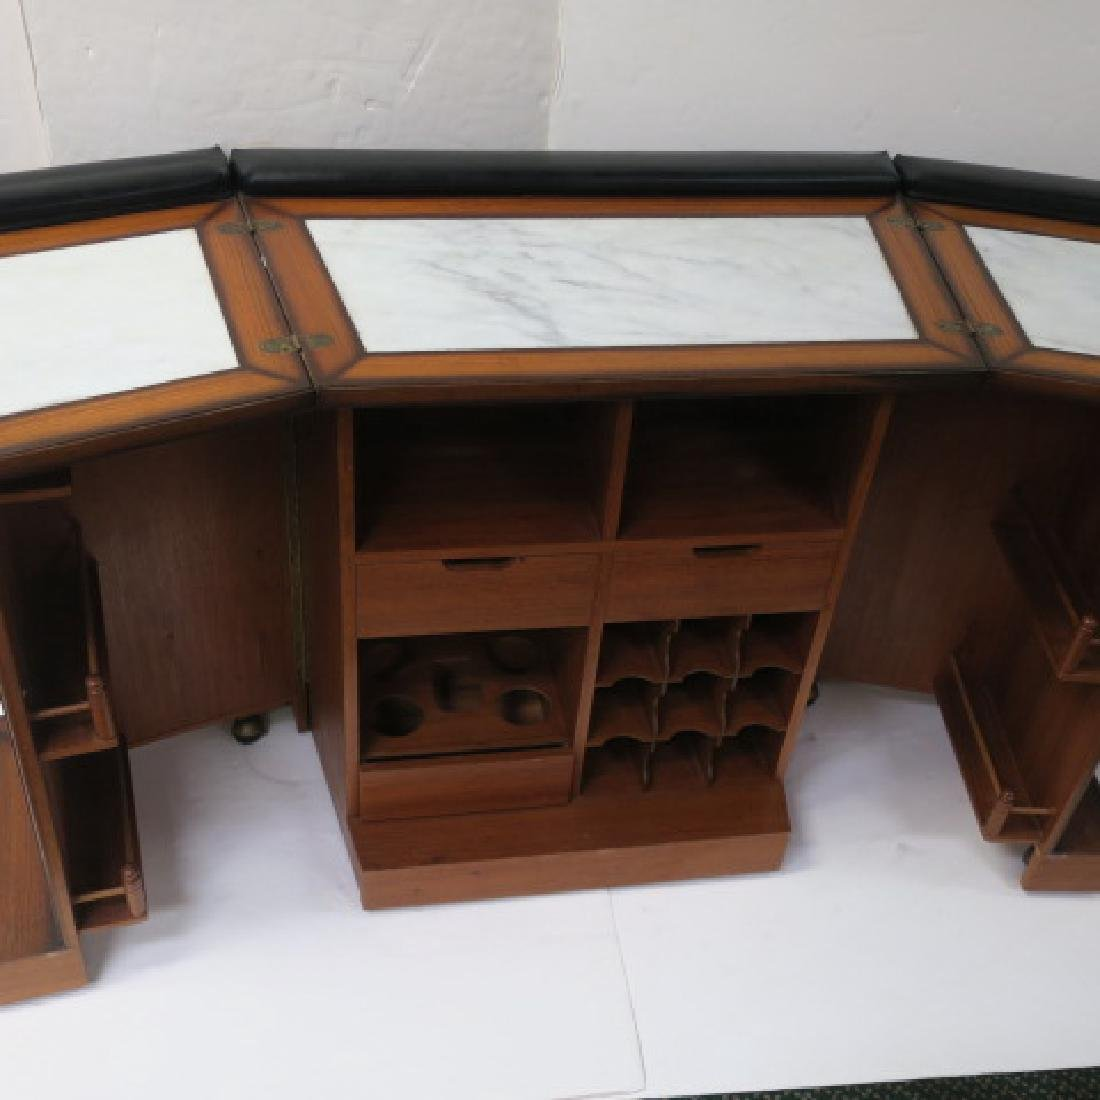 Tudor Style Bar with Fold Out Top, Hinged Sides: - 2